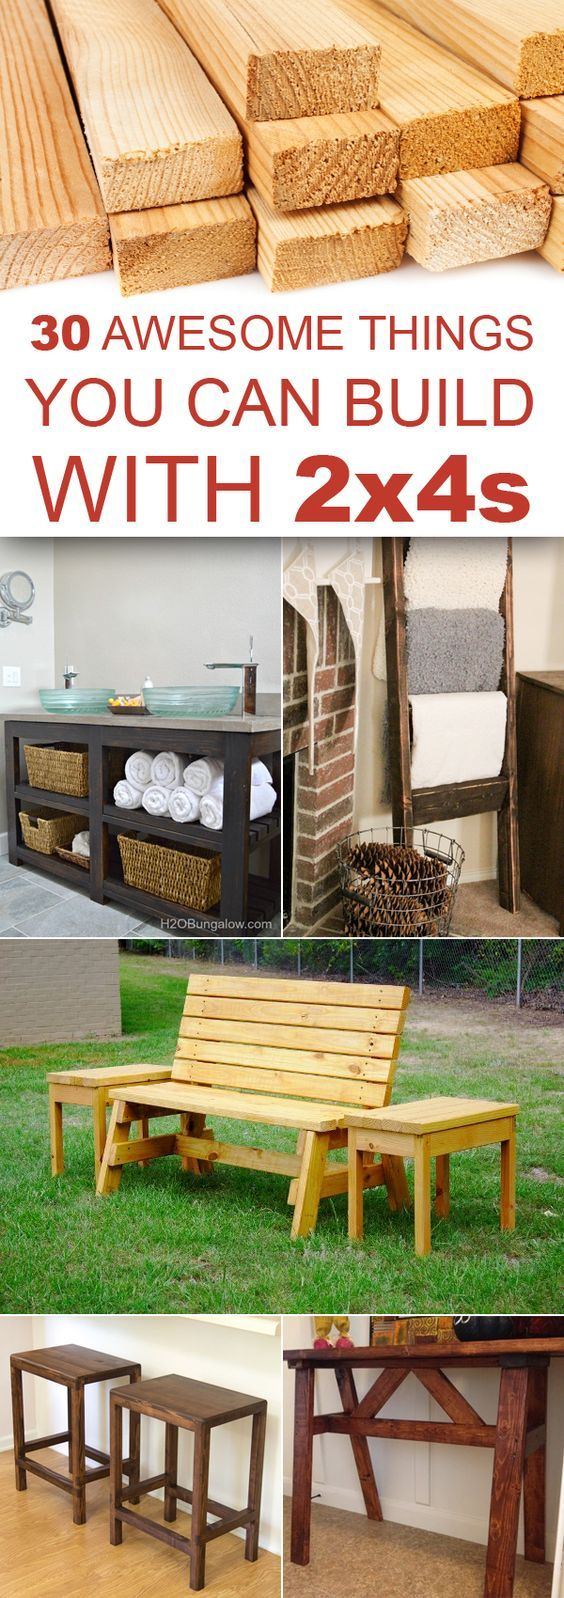 25+ best ideas about Diy Wood Projects on Pinterest | Wood ...